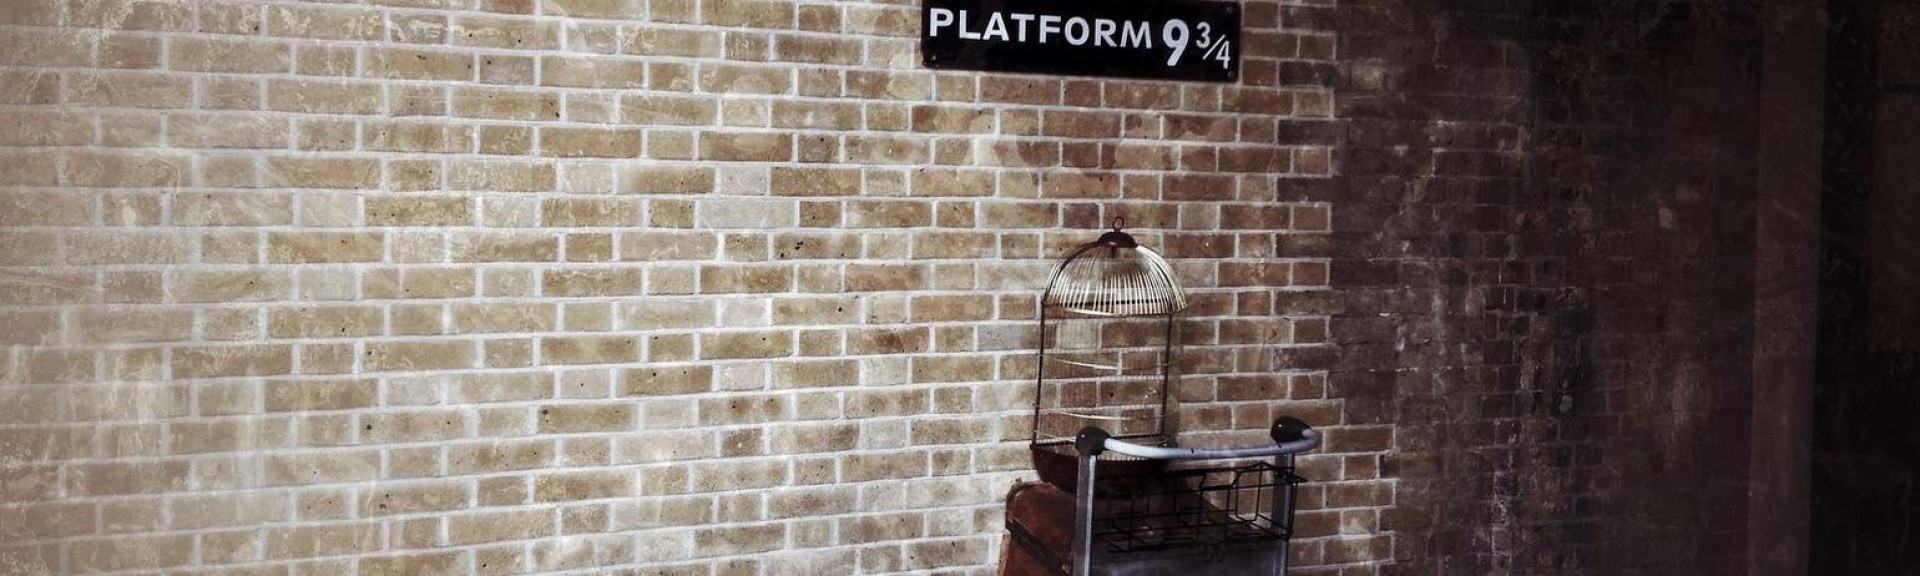 Platform 9¾ - Kings Cross Station